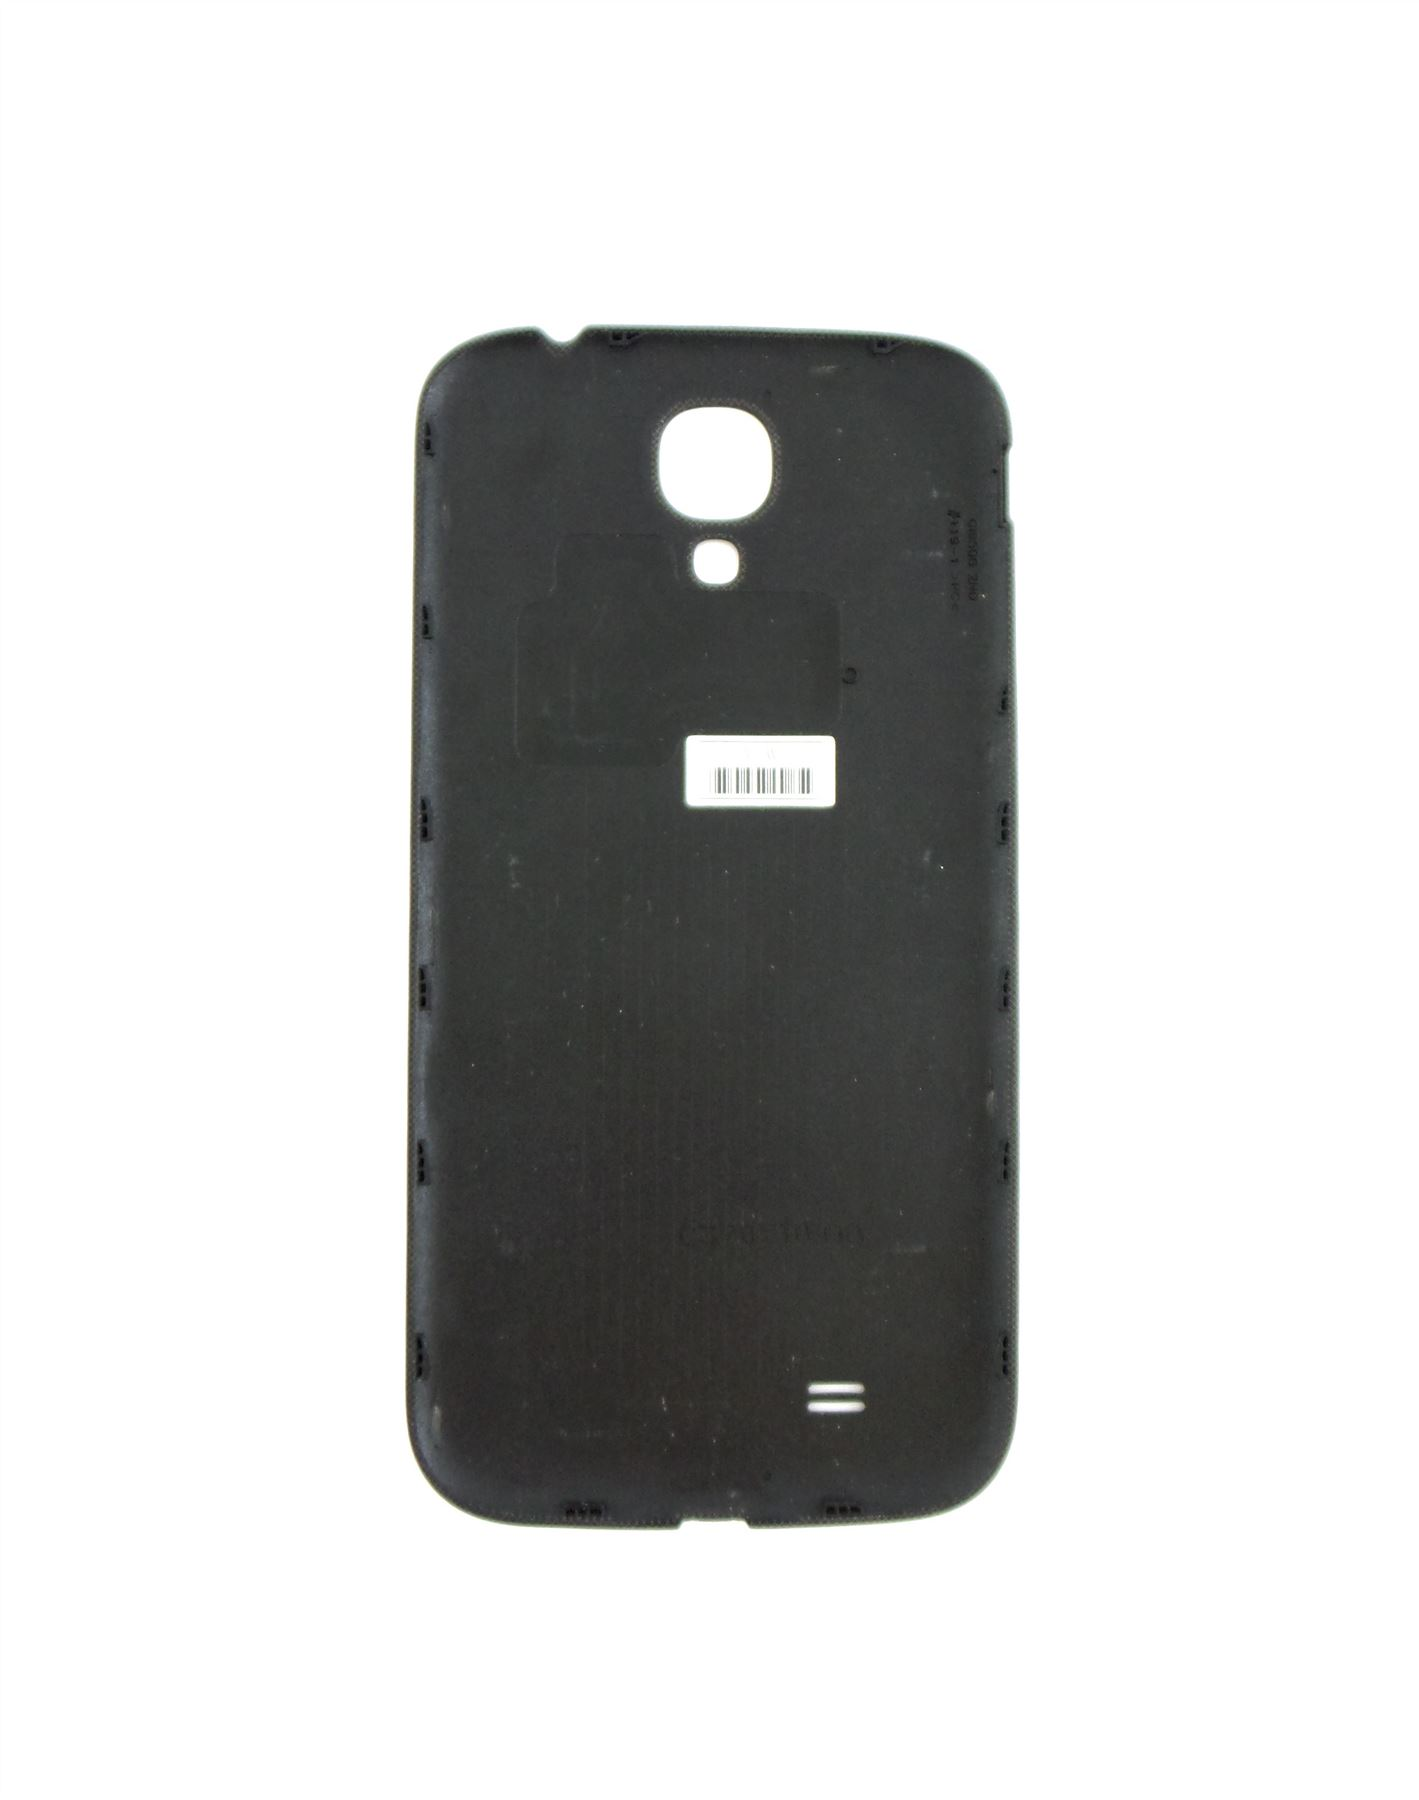 samsung galaxy s4 genuine battery door covers for at t verizon t mobile cricket ebay. Black Bedroom Furniture Sets. Home Design Ideas